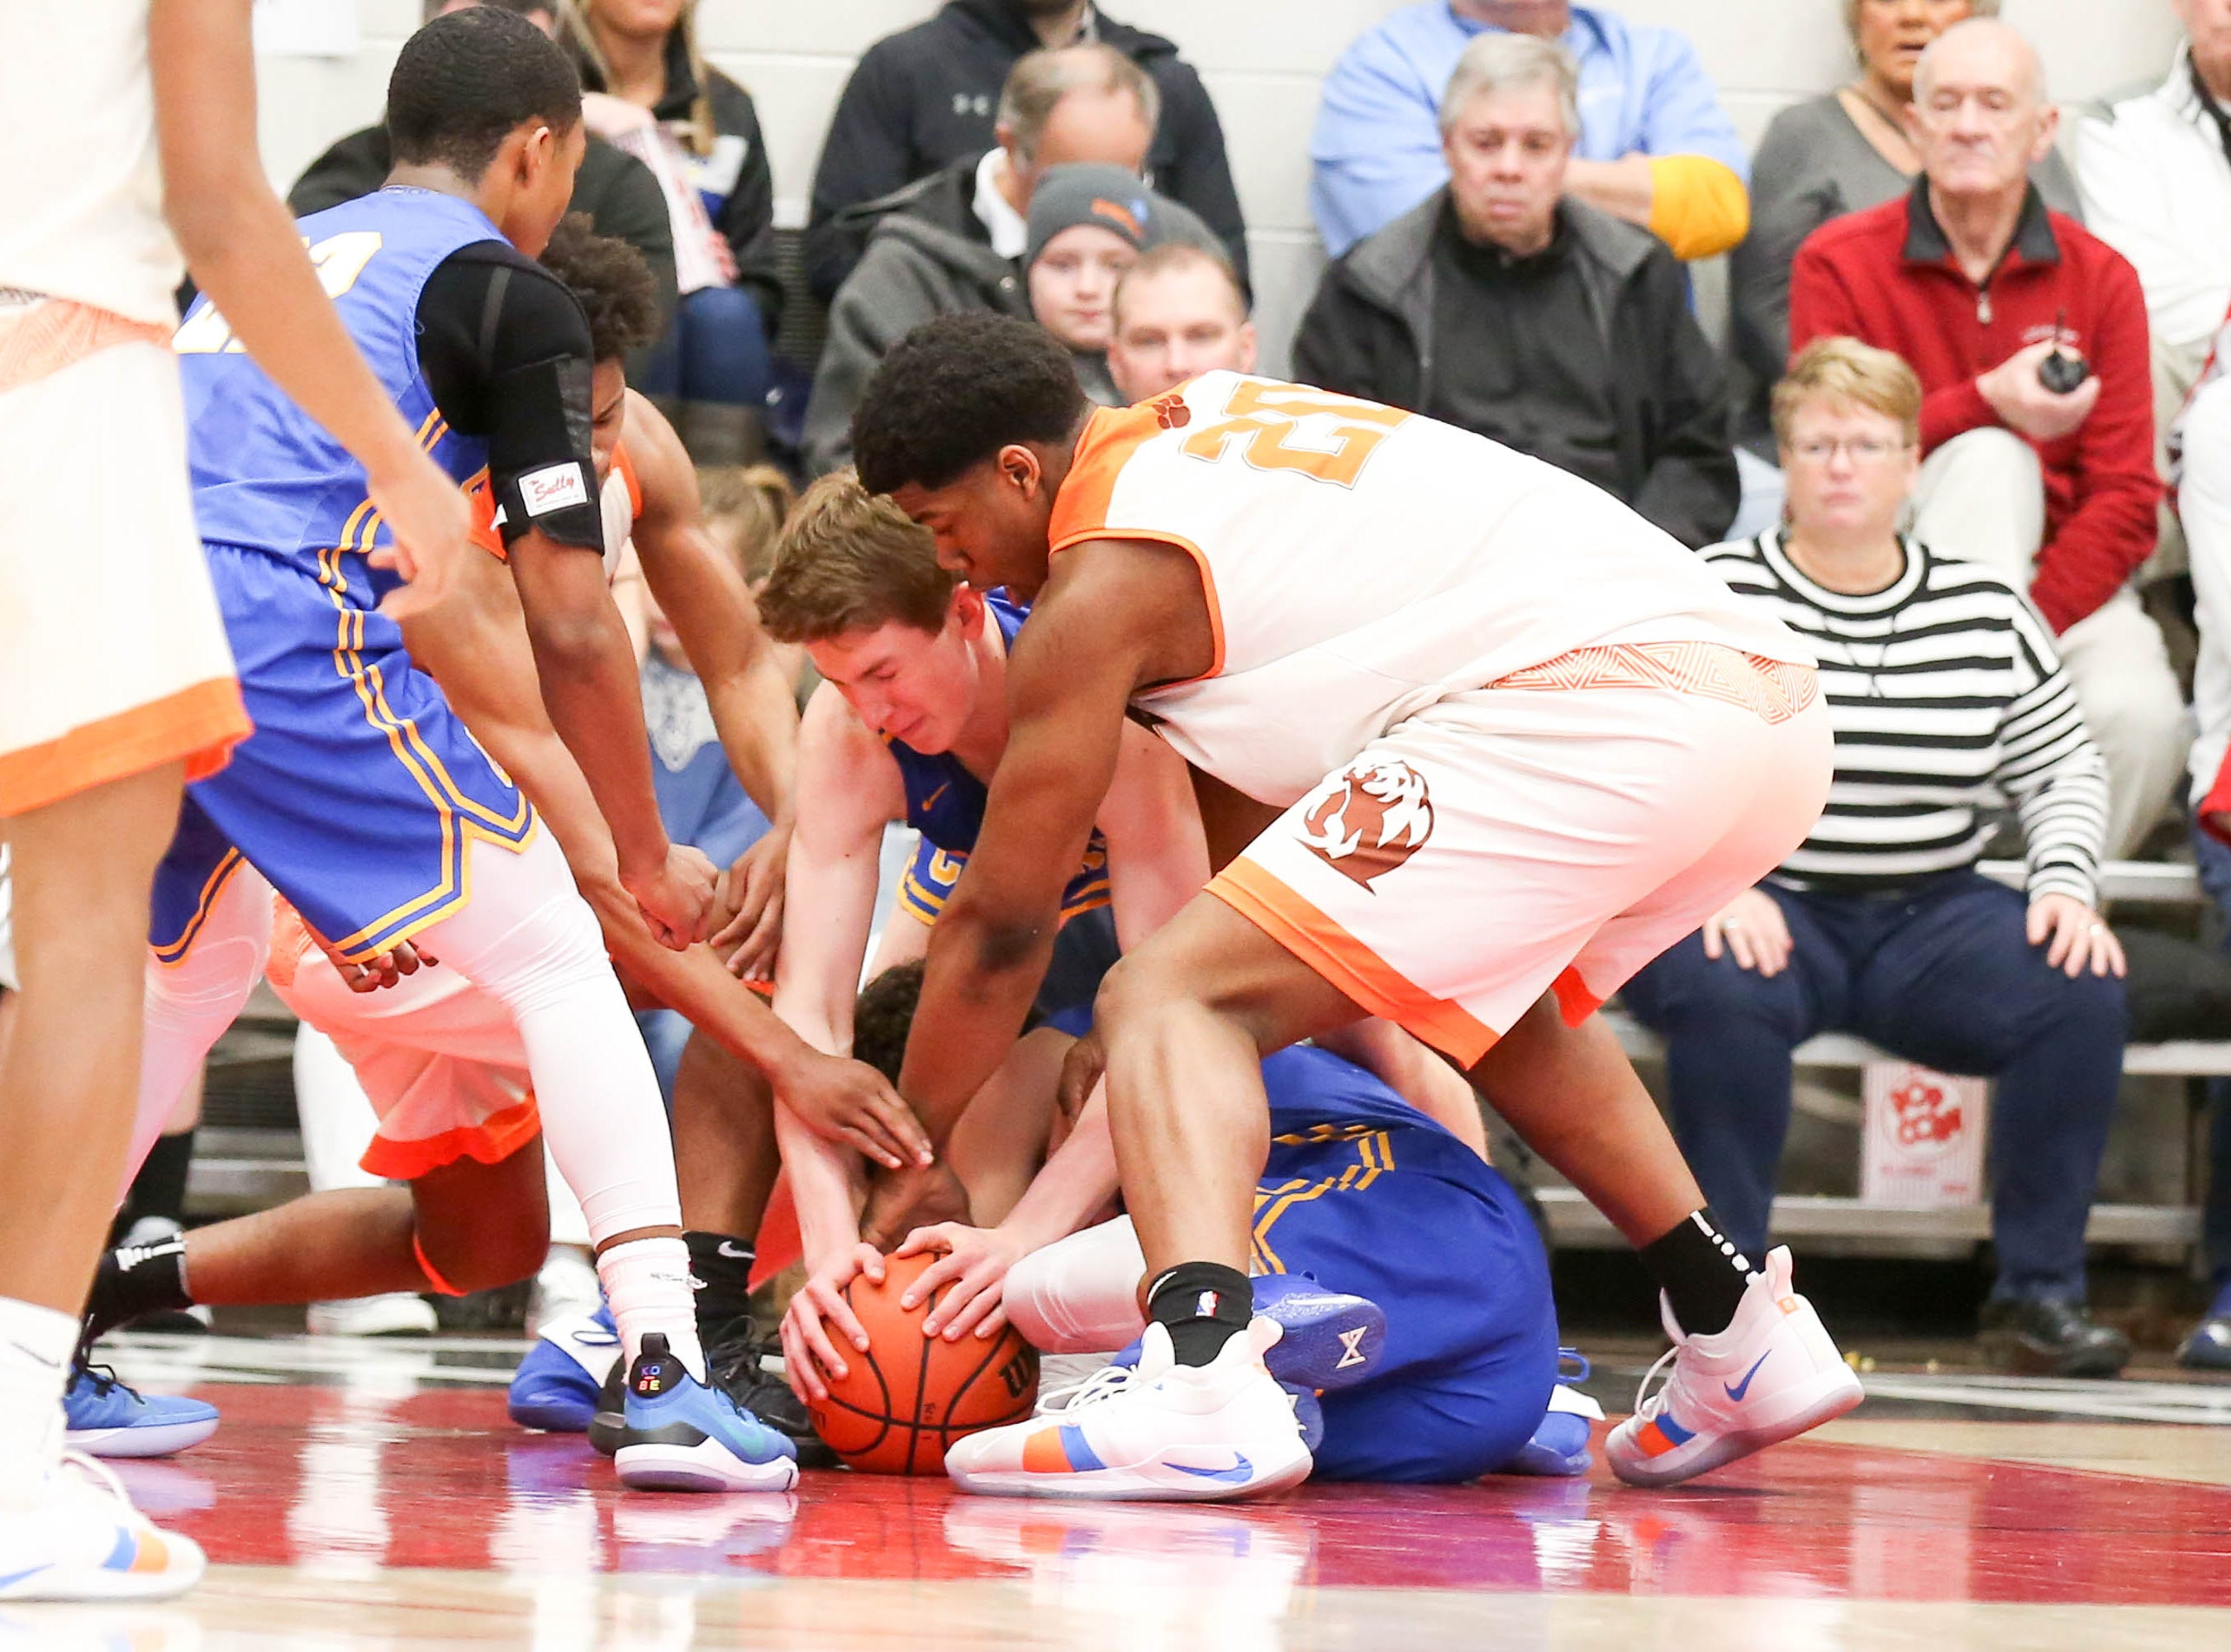 A scramble for loose ball during the second half of Carmel vs. Fort Wayne Northrop High School in the IHSAA Varsity Boys Regional Semifinals held at Logansport High School, March 9, 2019.